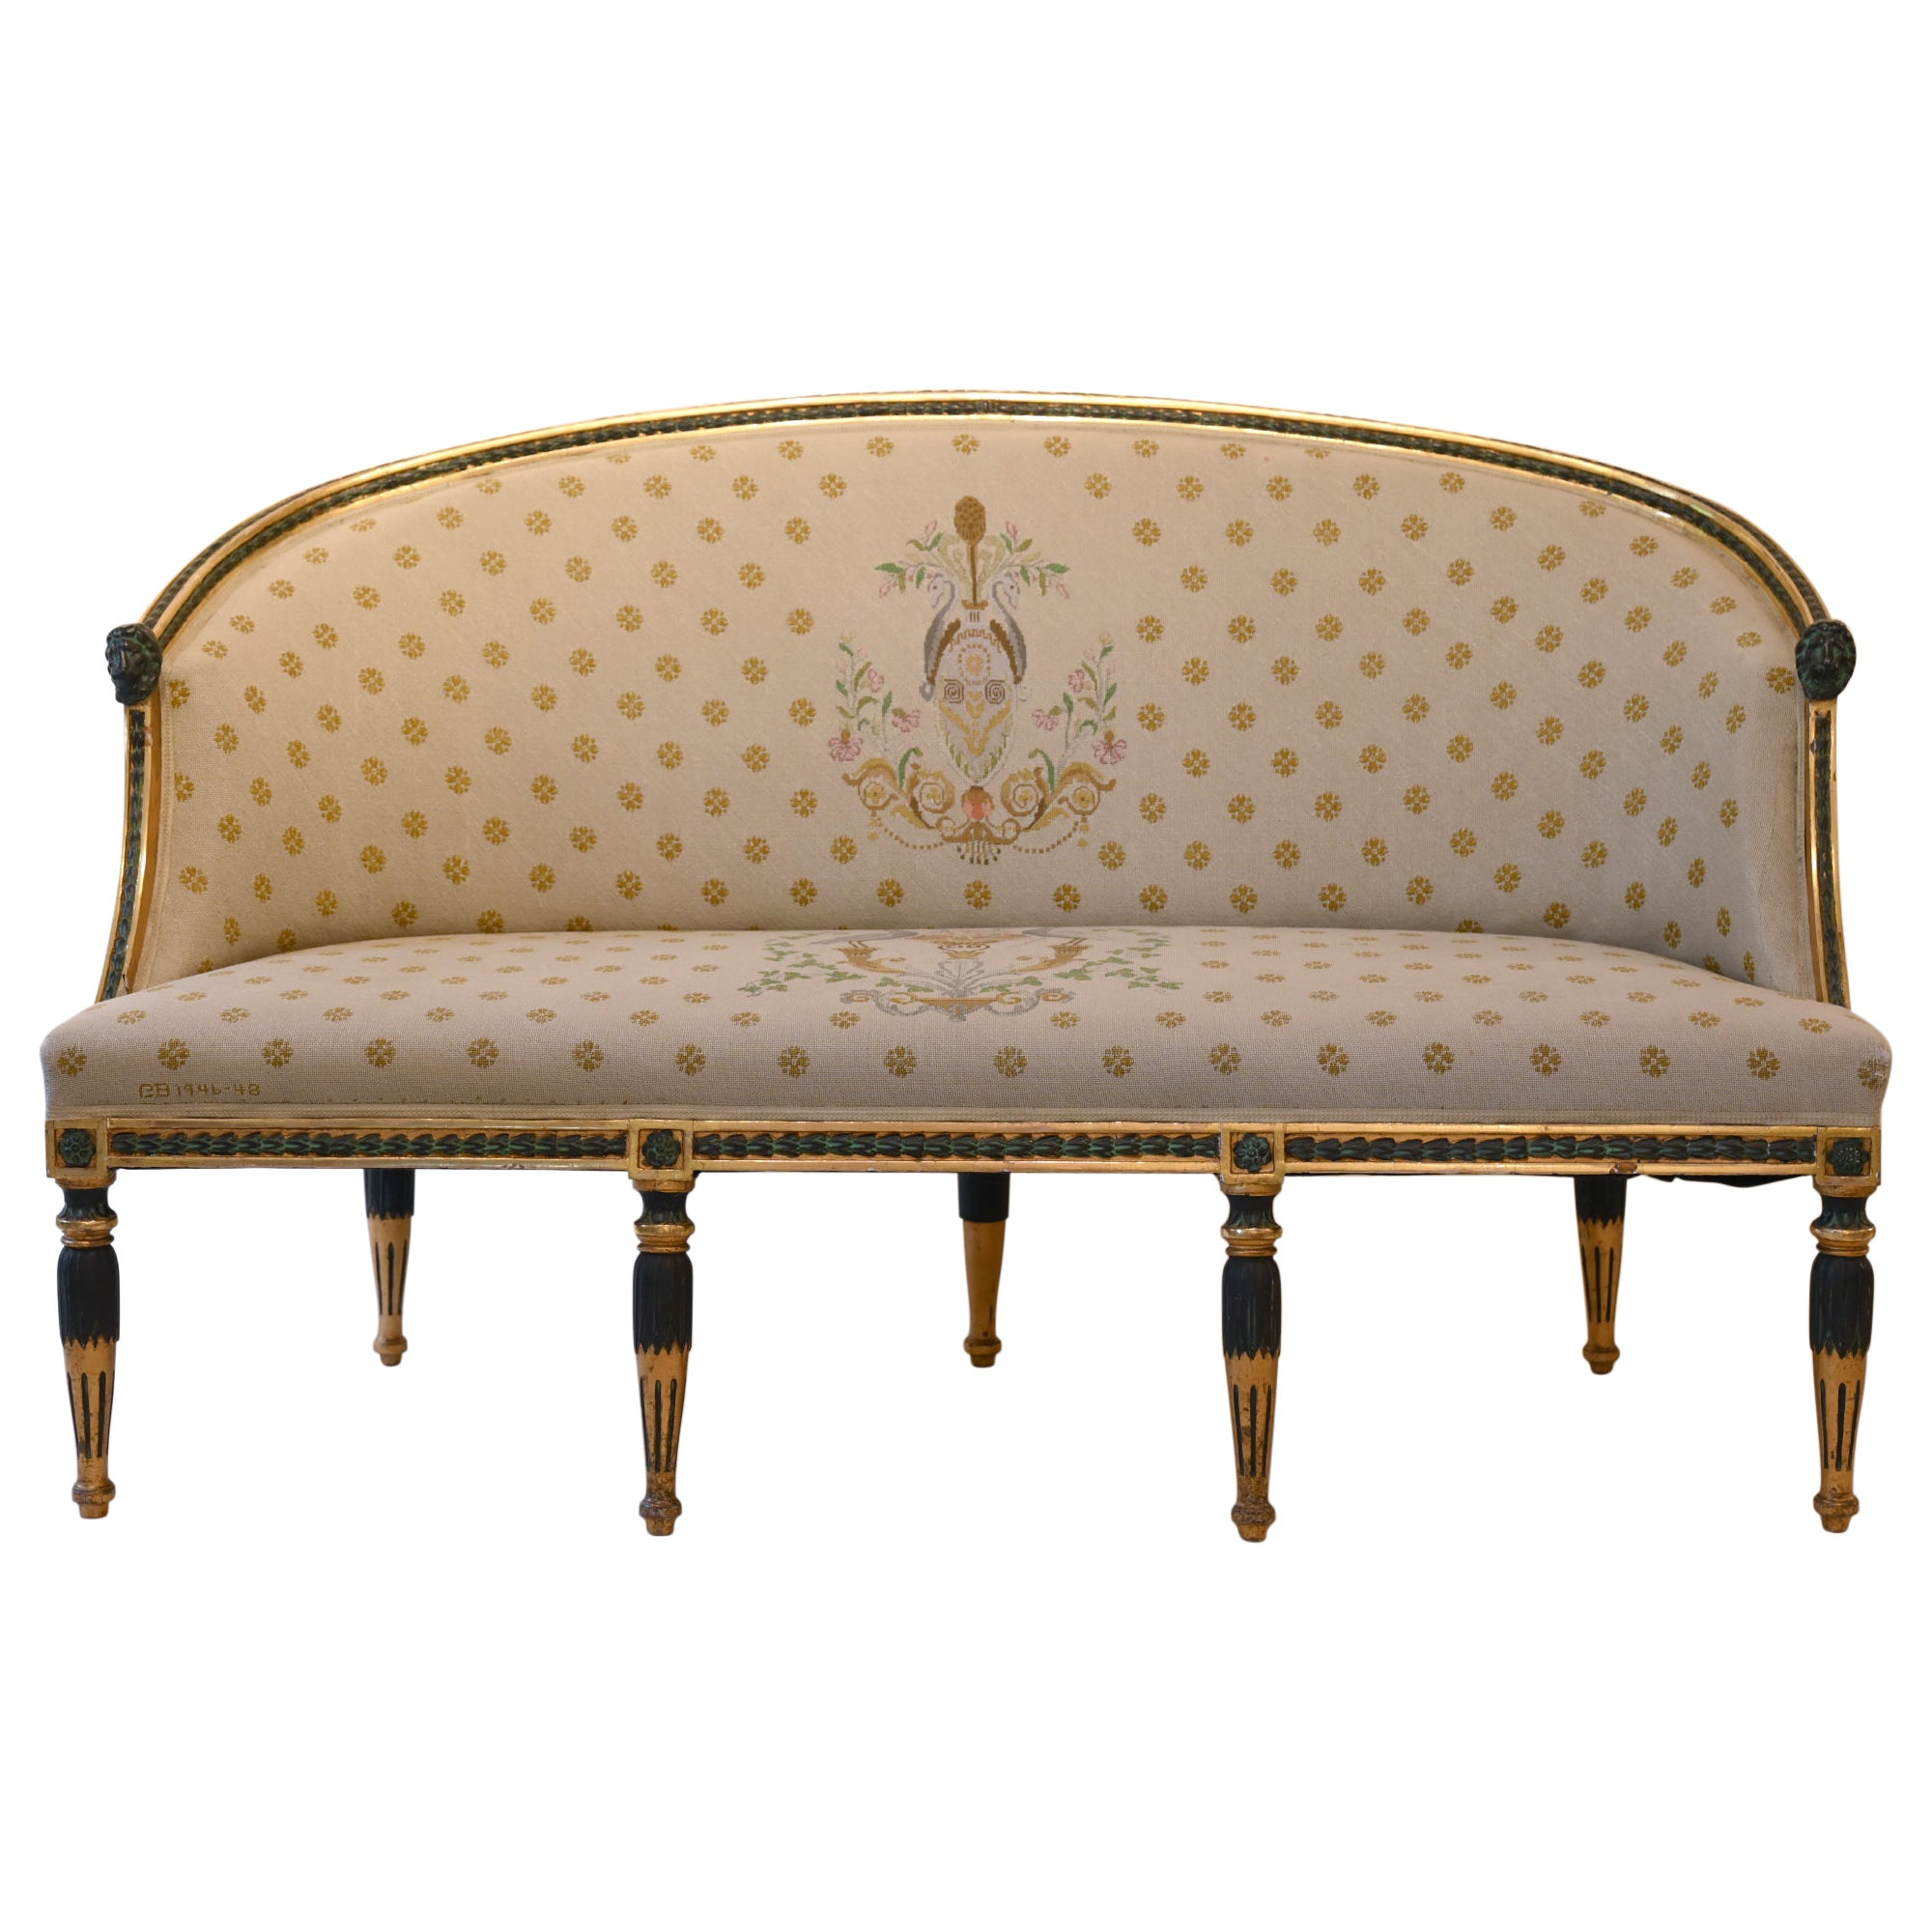 Swedish Late Gustavian Sofa by Ephraim Stahl Stockholm circa 1800 Gilded